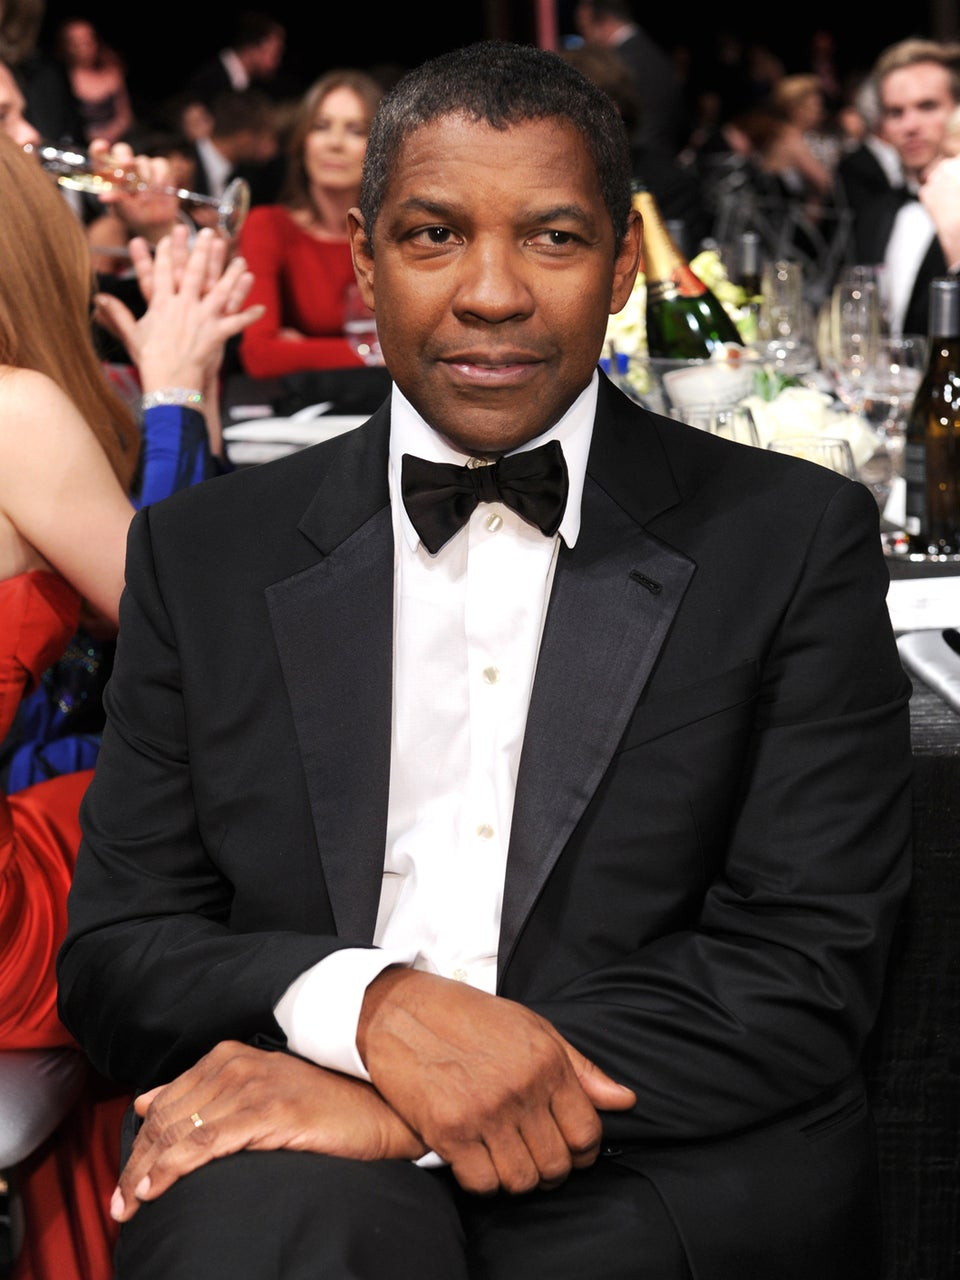 Coffee Talk: Denzel Washington to Star in 'A Raisin in the Sun' Revival